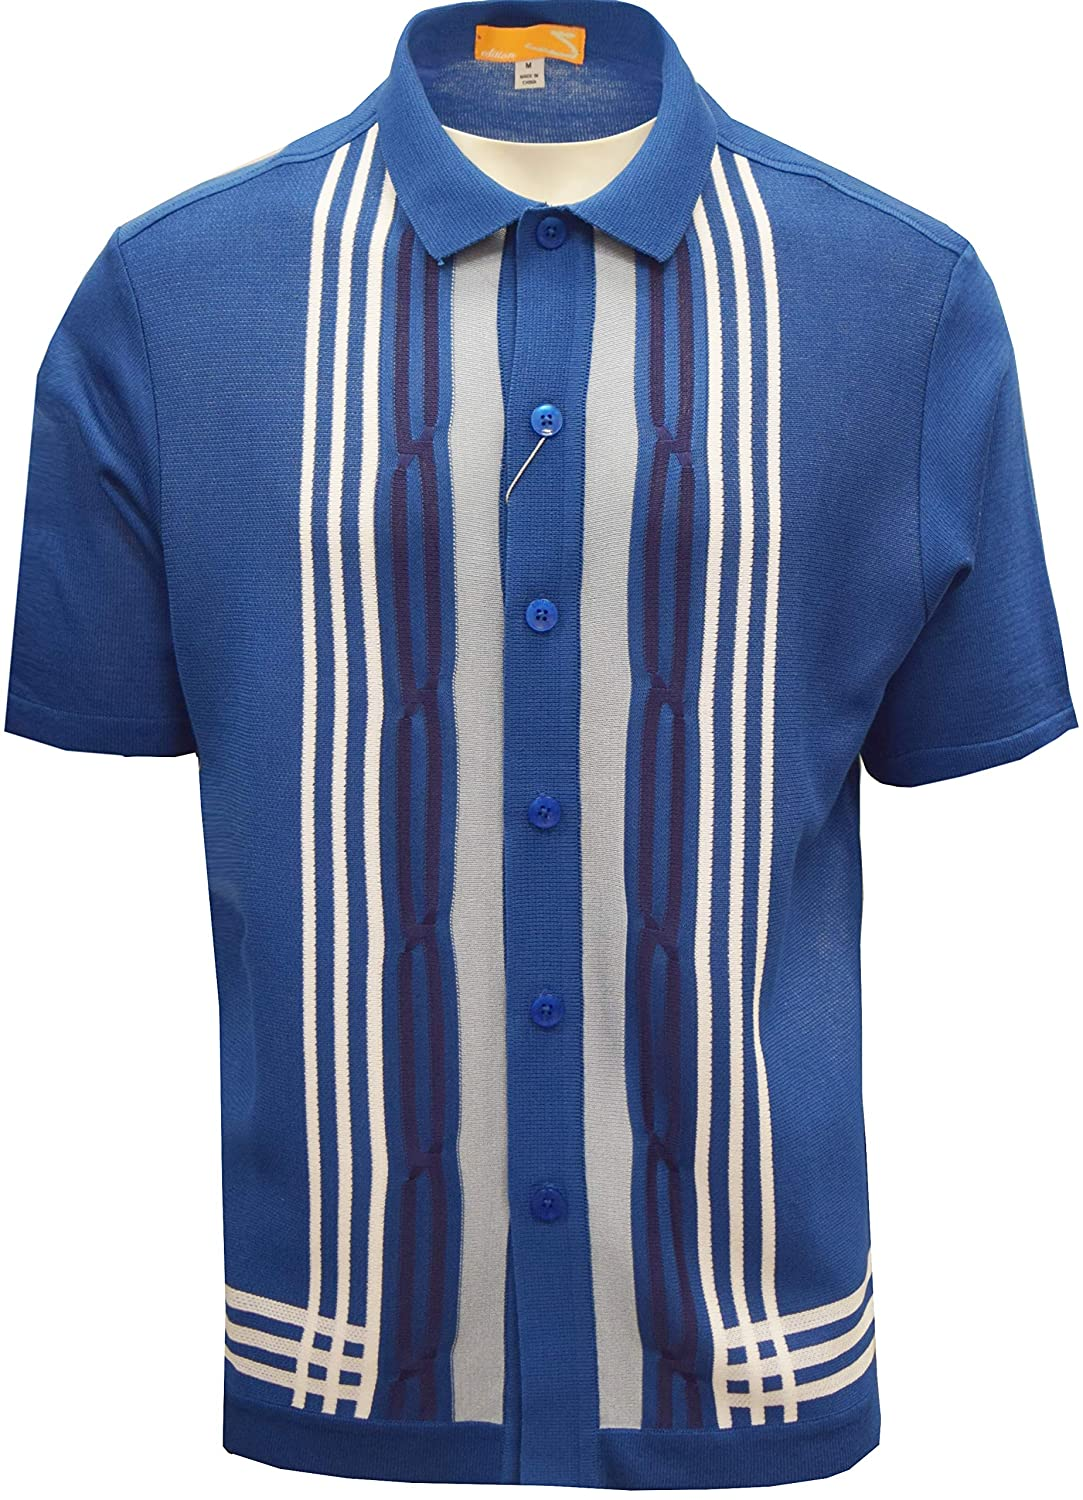 1950s Men's Clothing SAFIRE SILK INC. Edition S Mens Short Sleeve Knit Shirt - California Rockabilly Style: Multi Stripes $49.00 AT vintagedancer.com